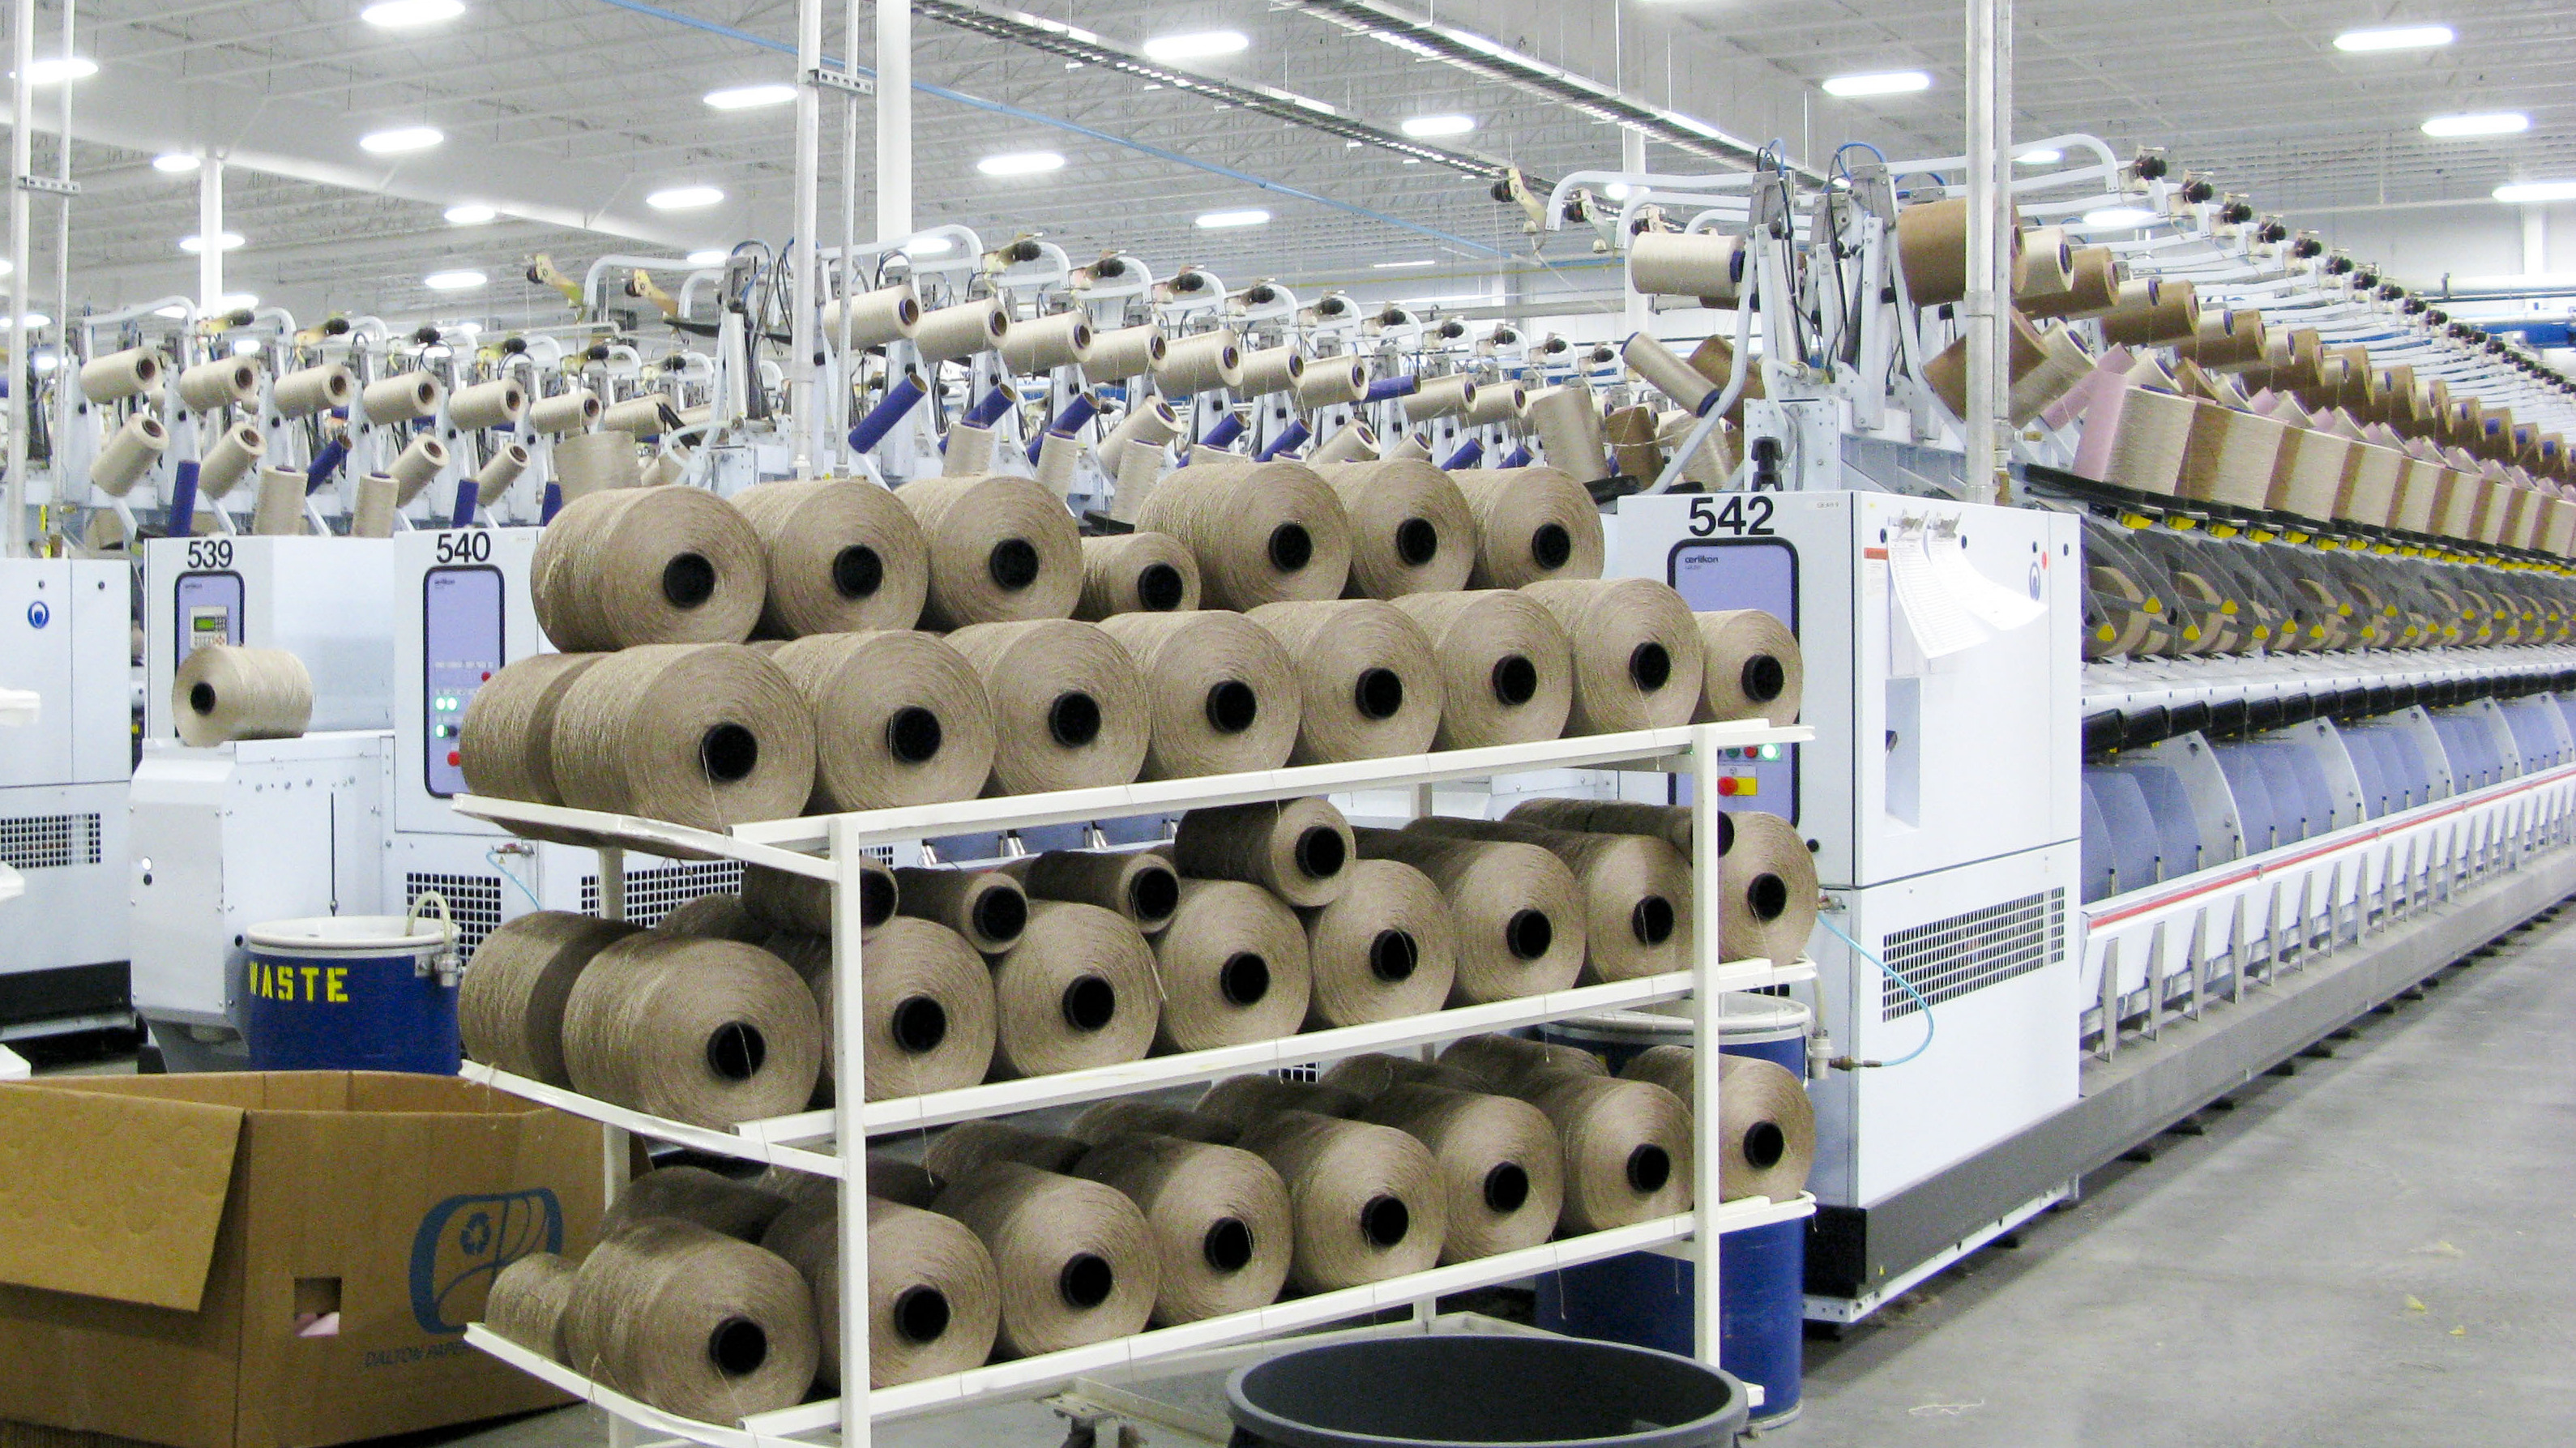 New Carpet Factories Help Cushion Blows From Recession Losses : NPR